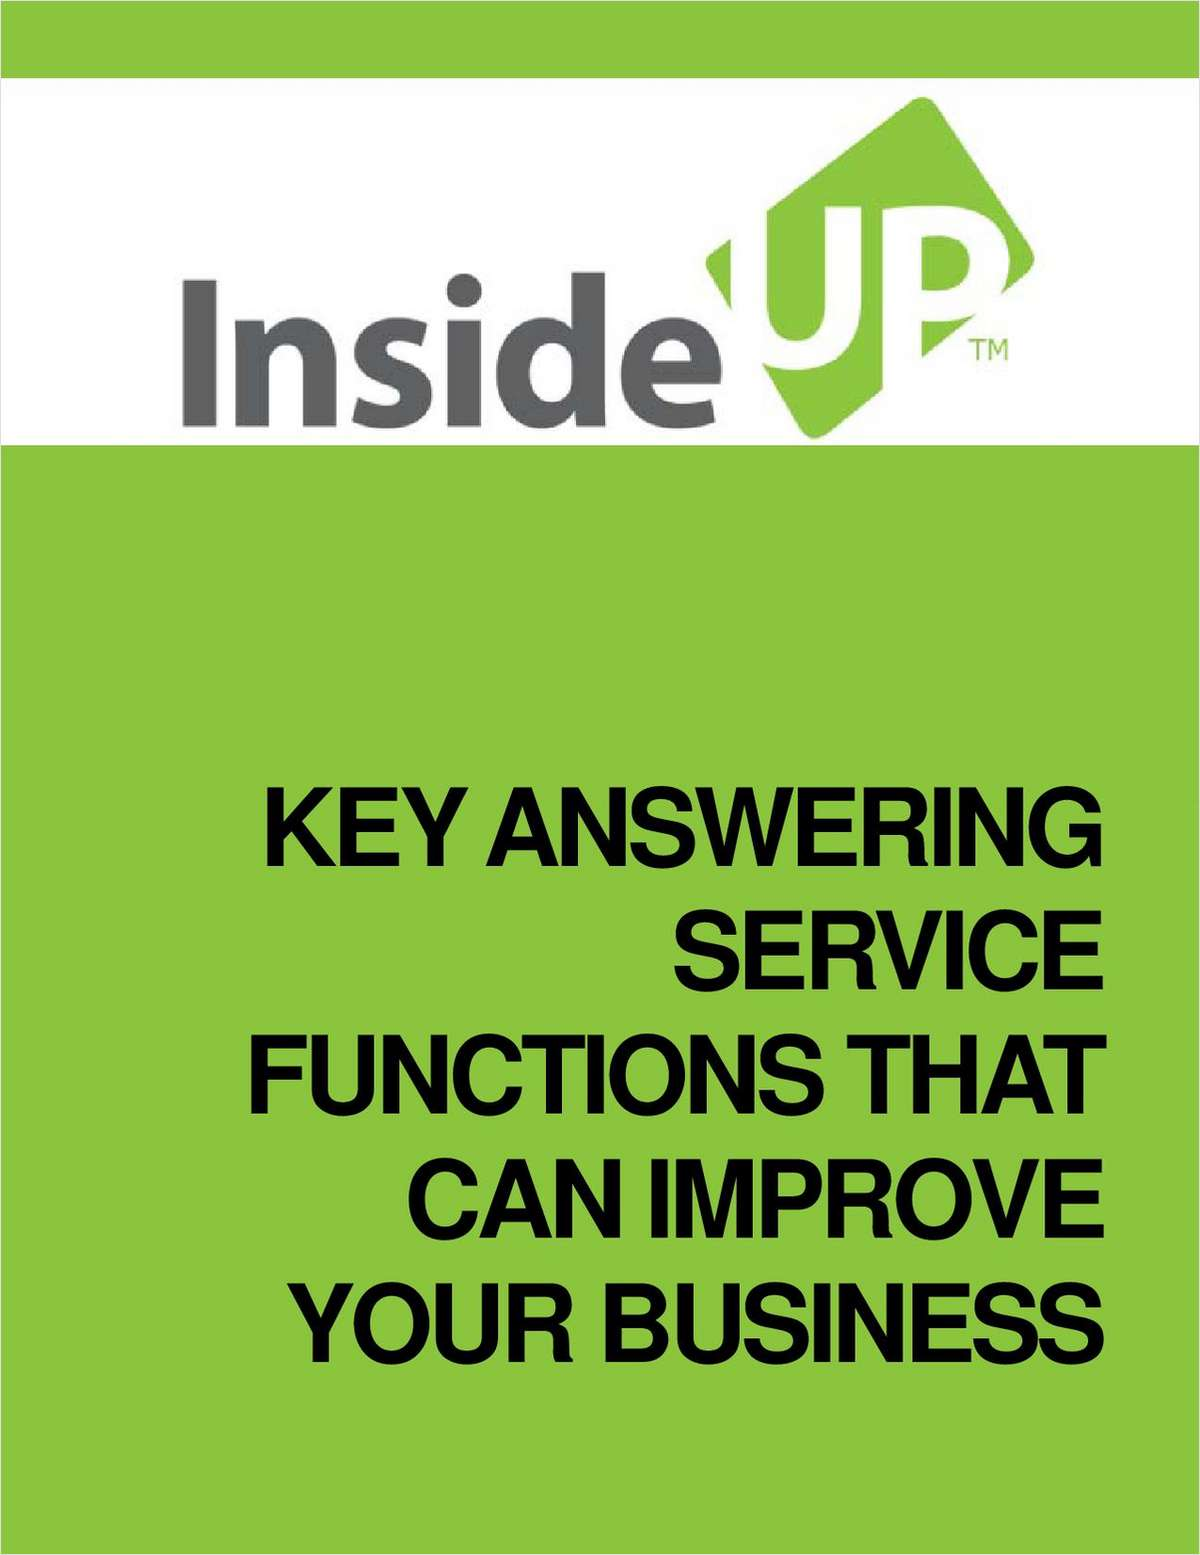 Key Answering Service Functions That Can Improve Your Business